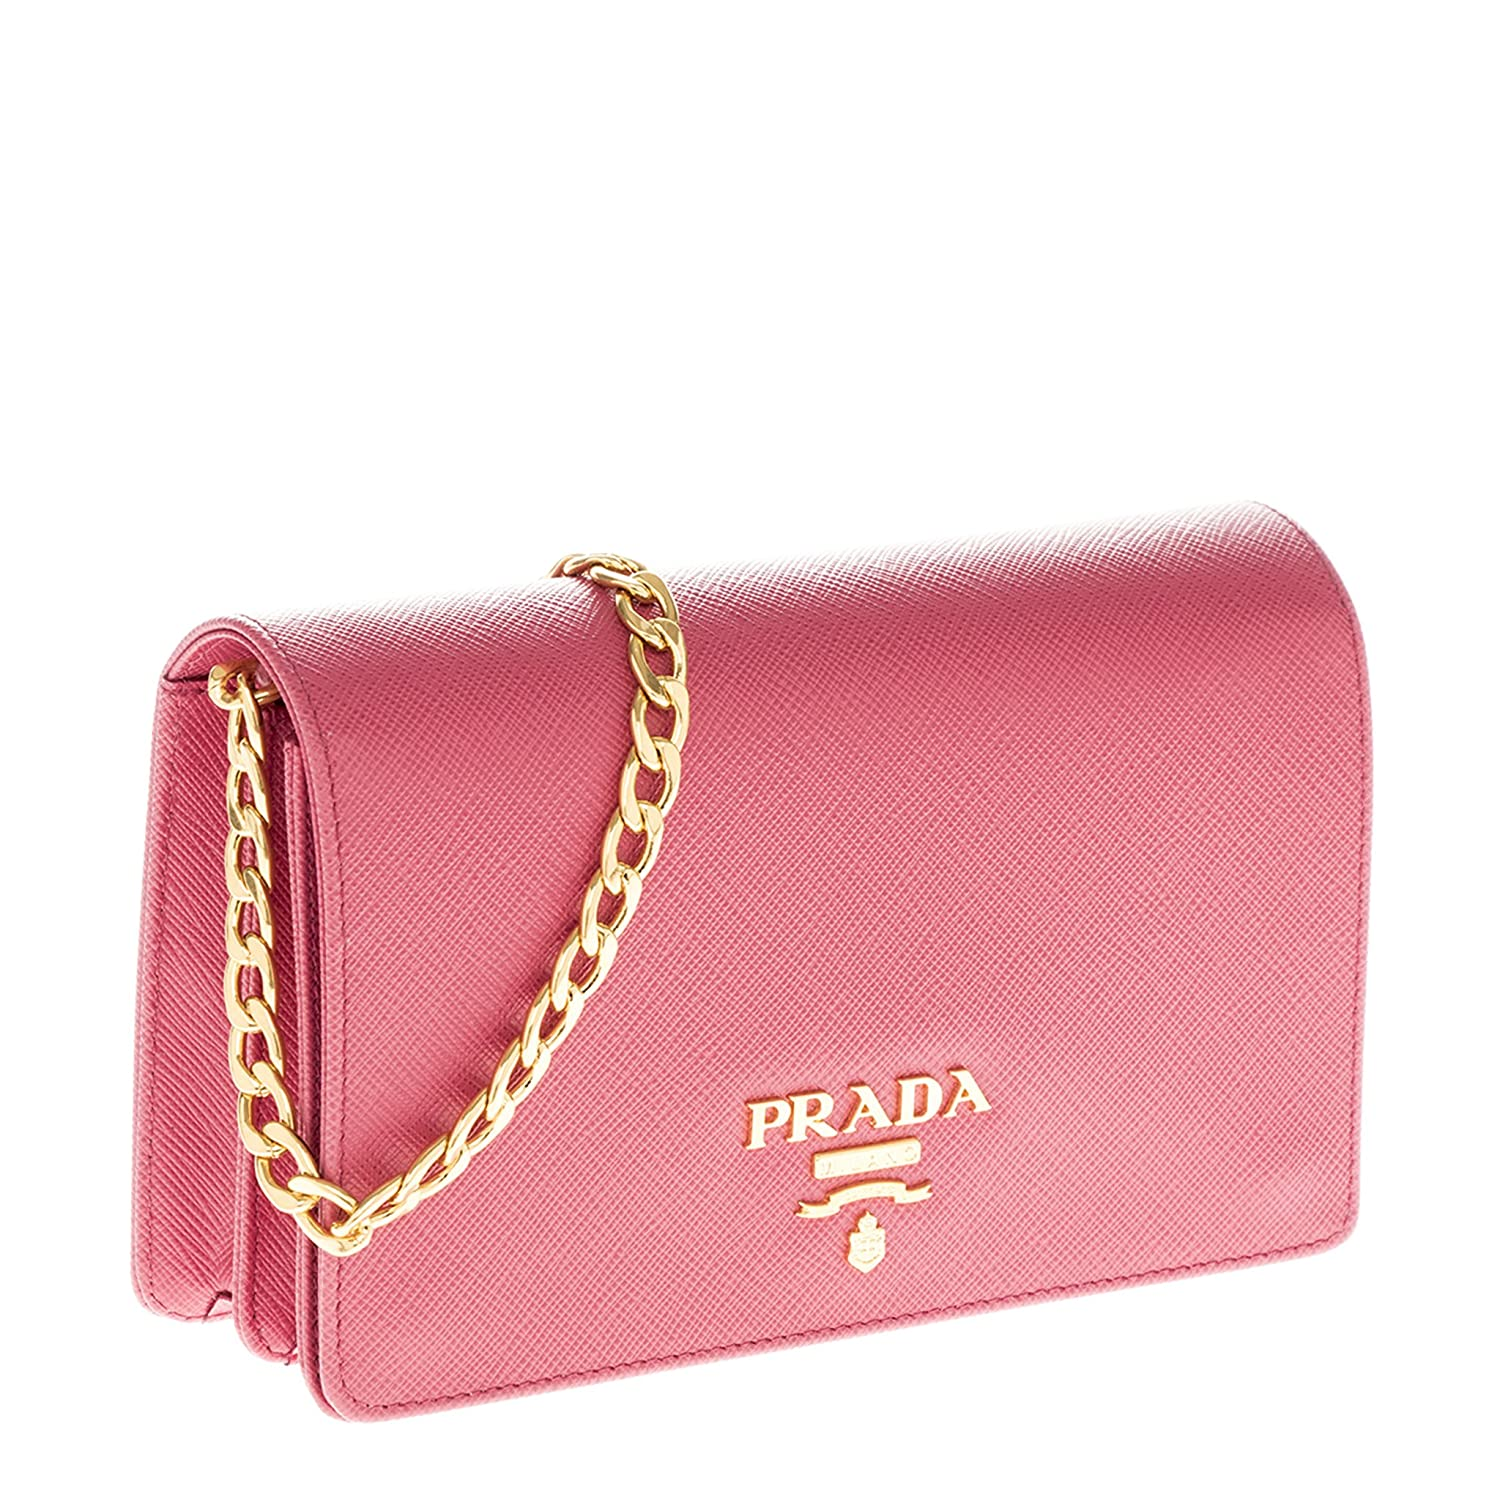 ec4122a37ae9 Prada Saffiano Lux Chain Crossbody Bag Pink  Handbags  Amazon.com